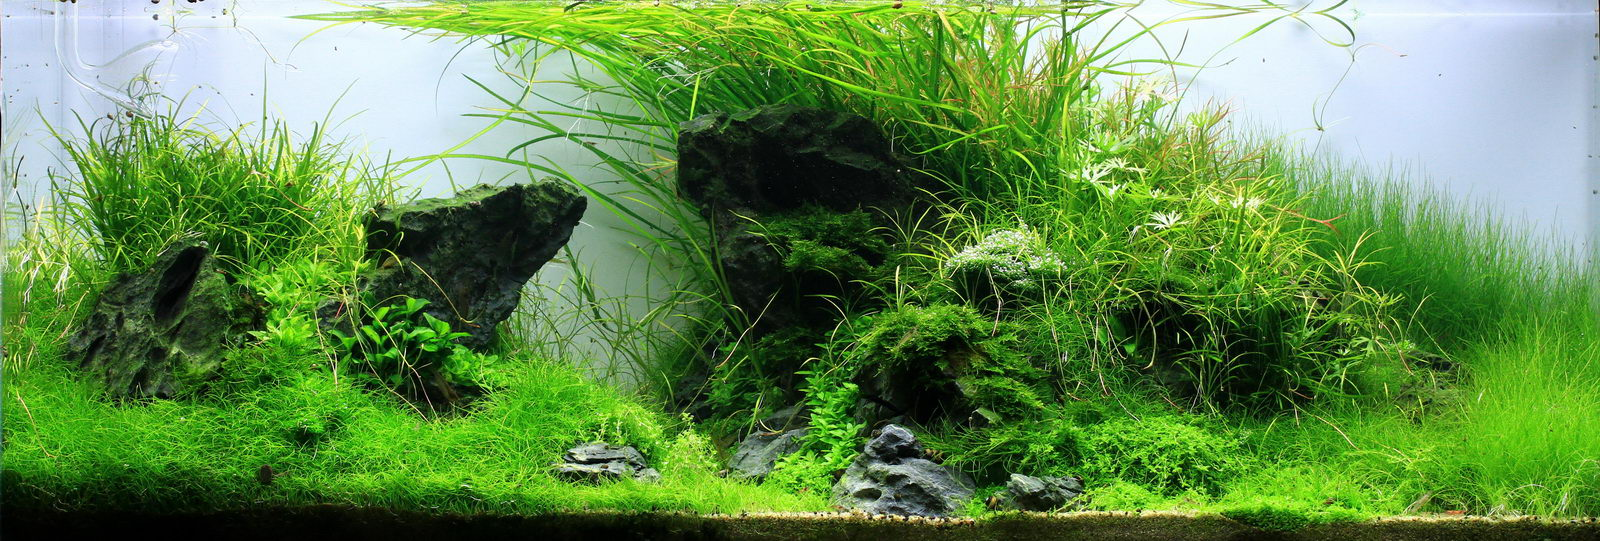 Image gallery aquascape background - Gallery aquascape ...